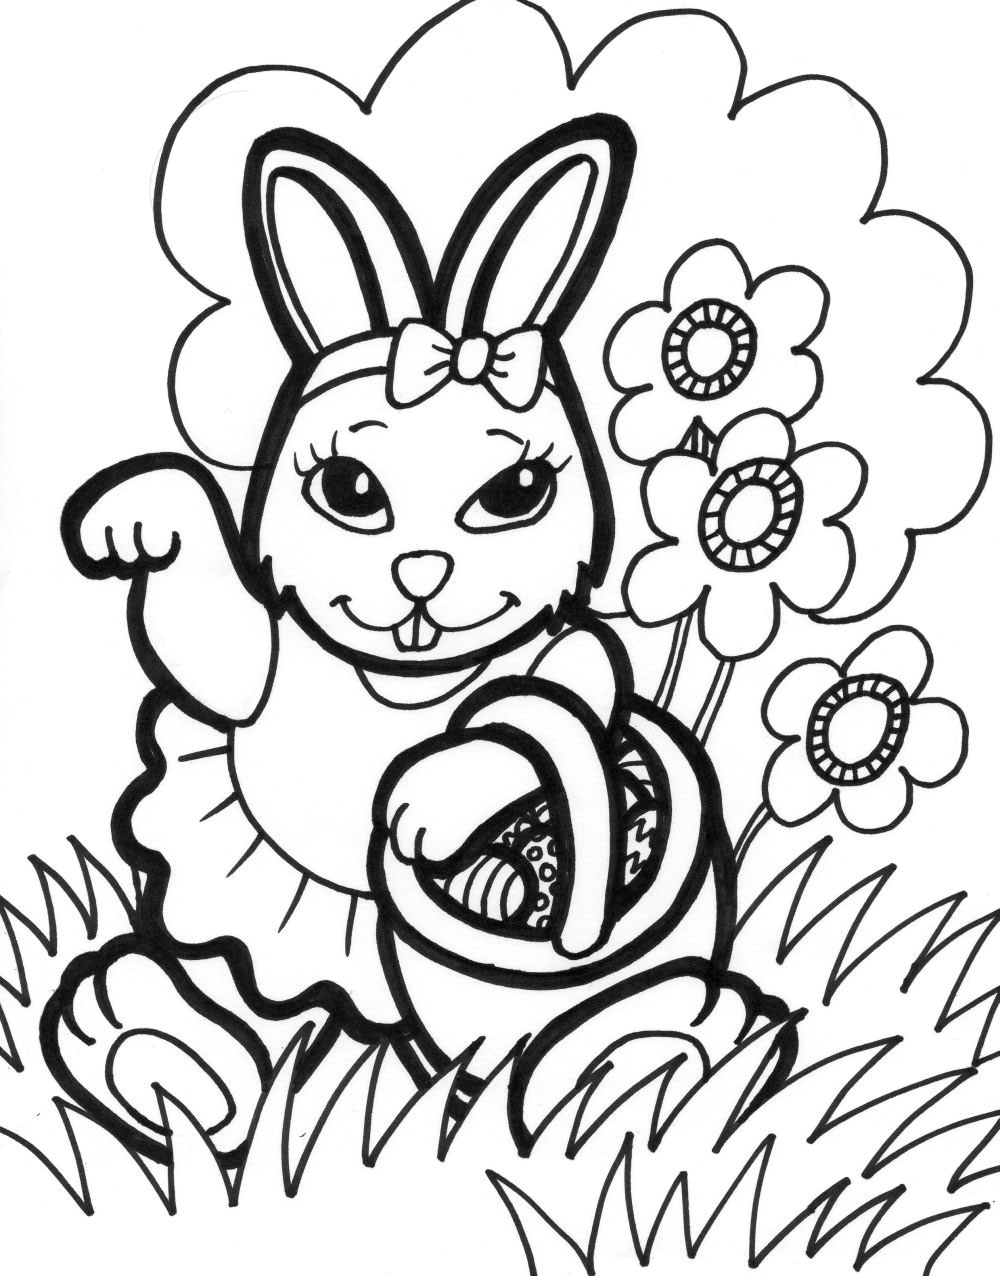 Coloring Pages For Easter Bunny : Free printable easter bunny coloring pages for kids